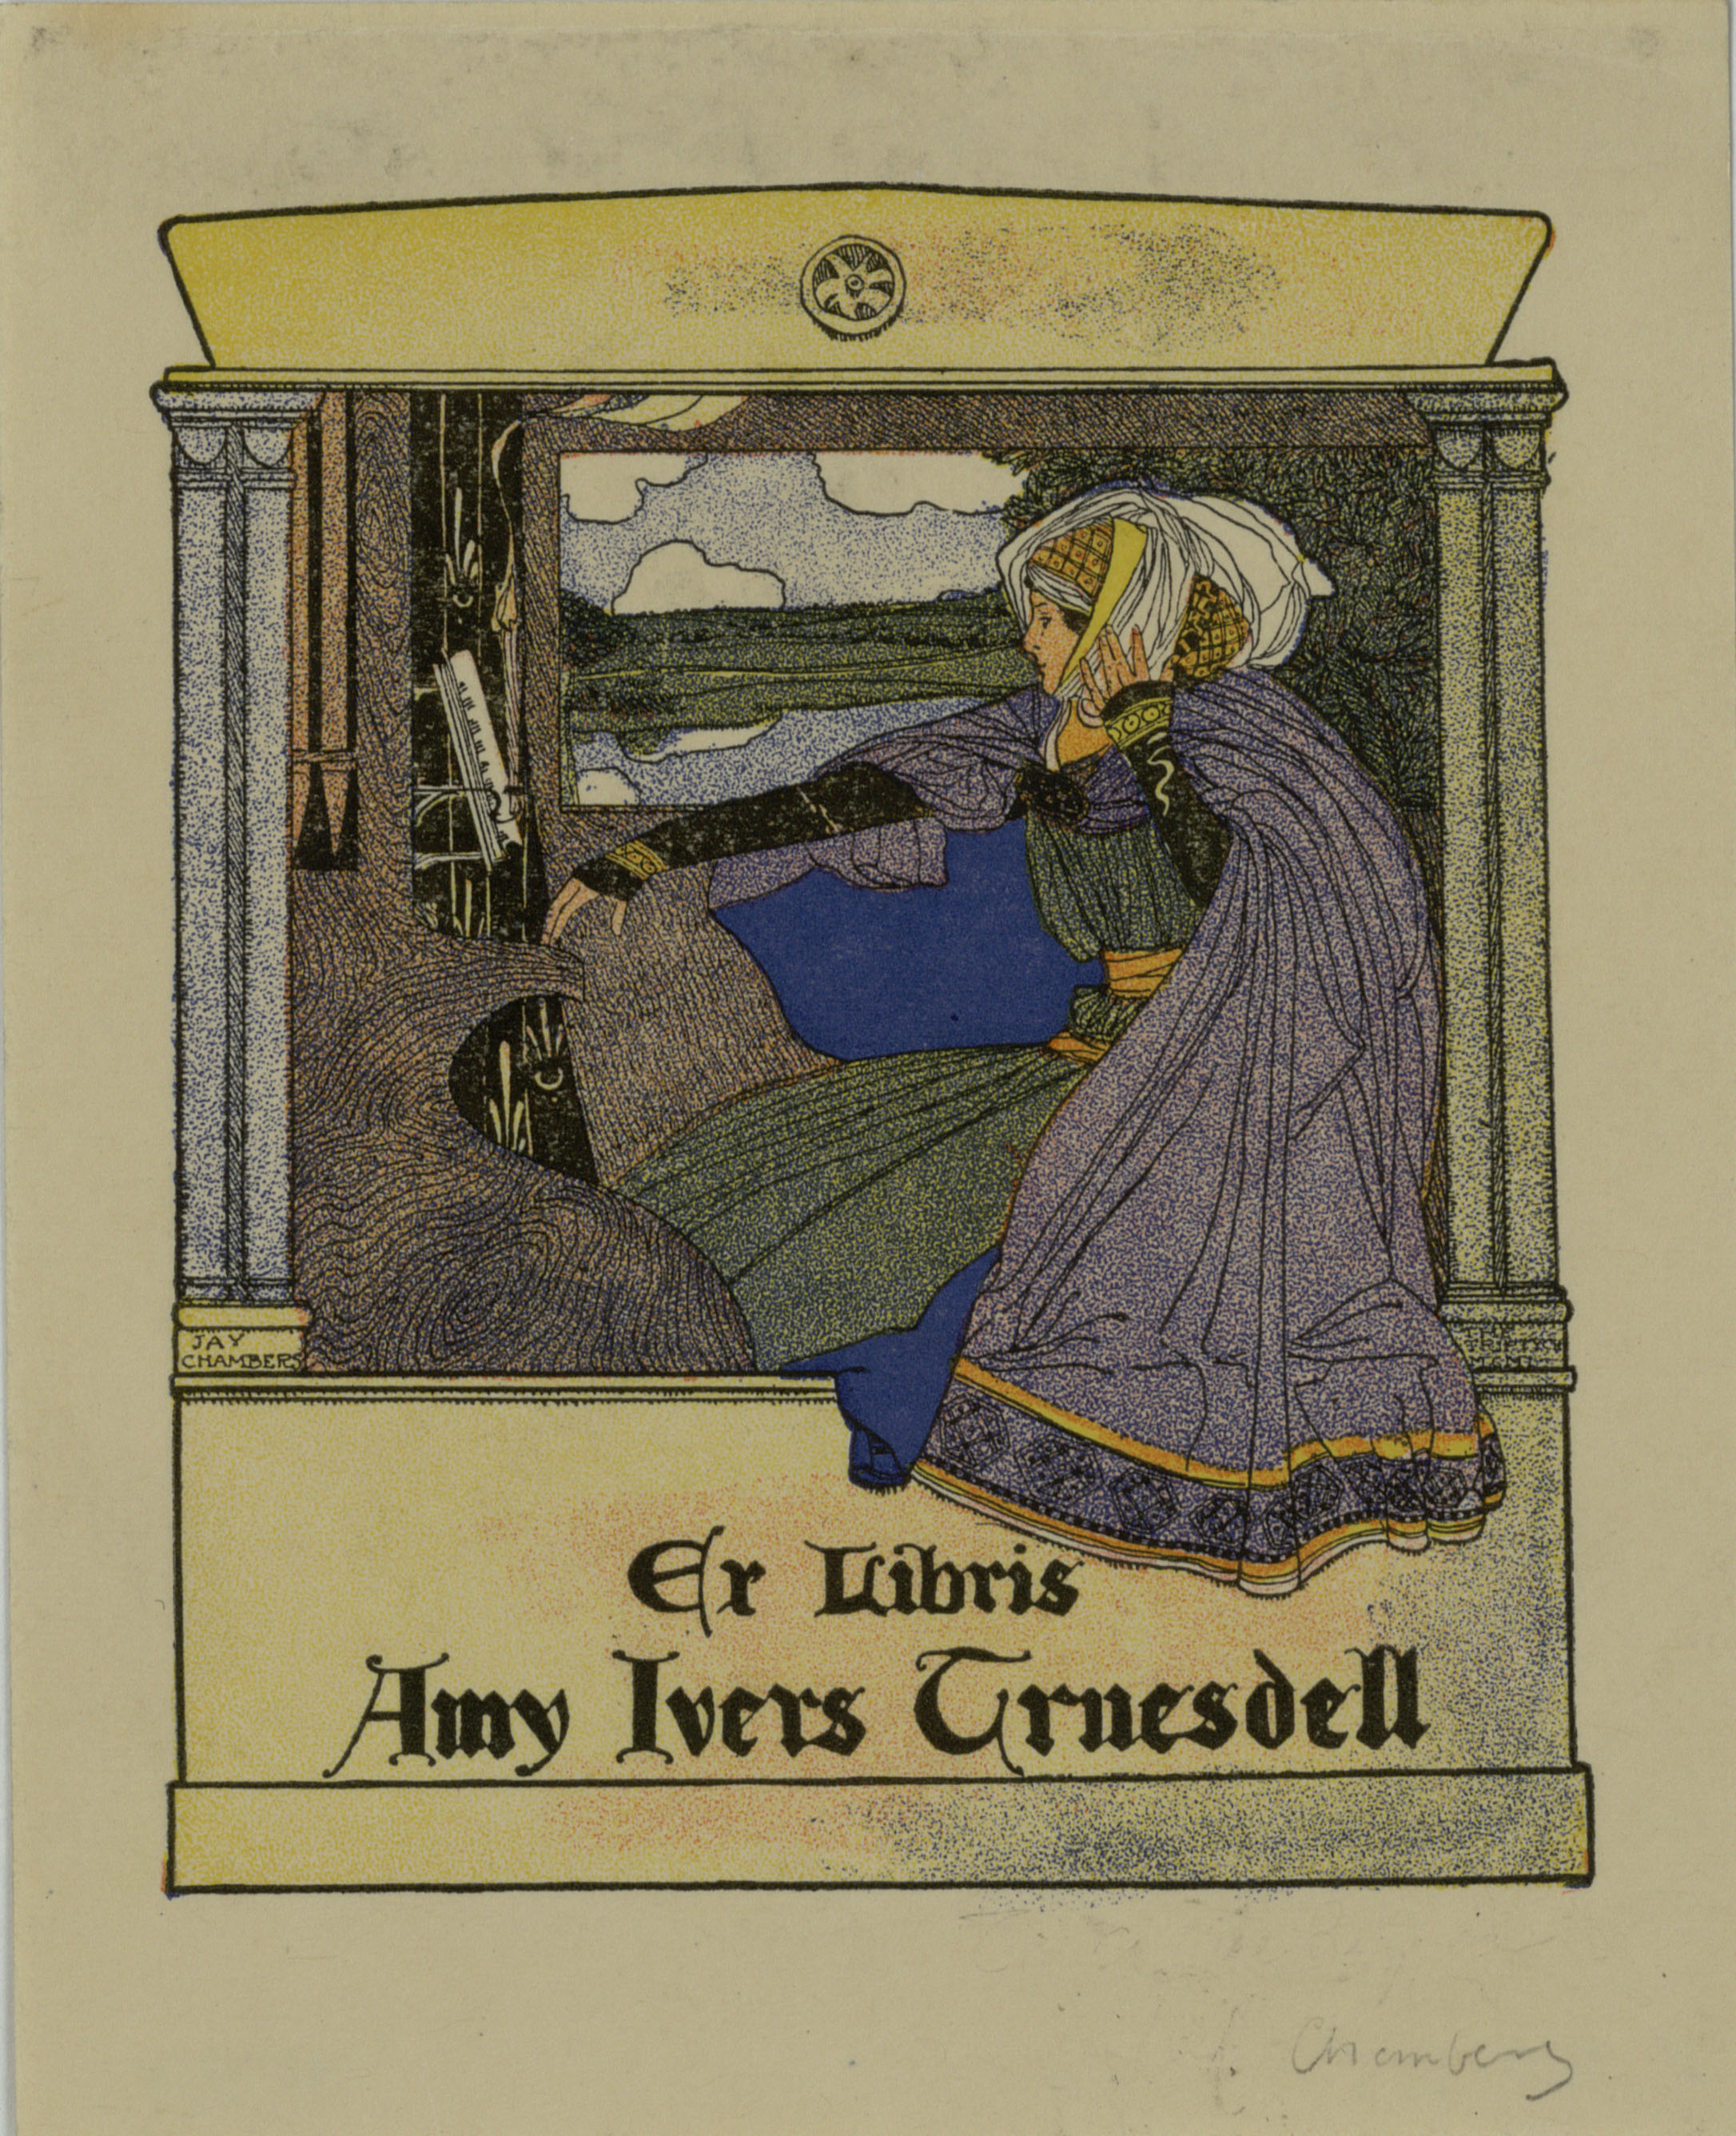 Jay K. Chambers - Ex-libris Amy Ivers Truesdell - 1901